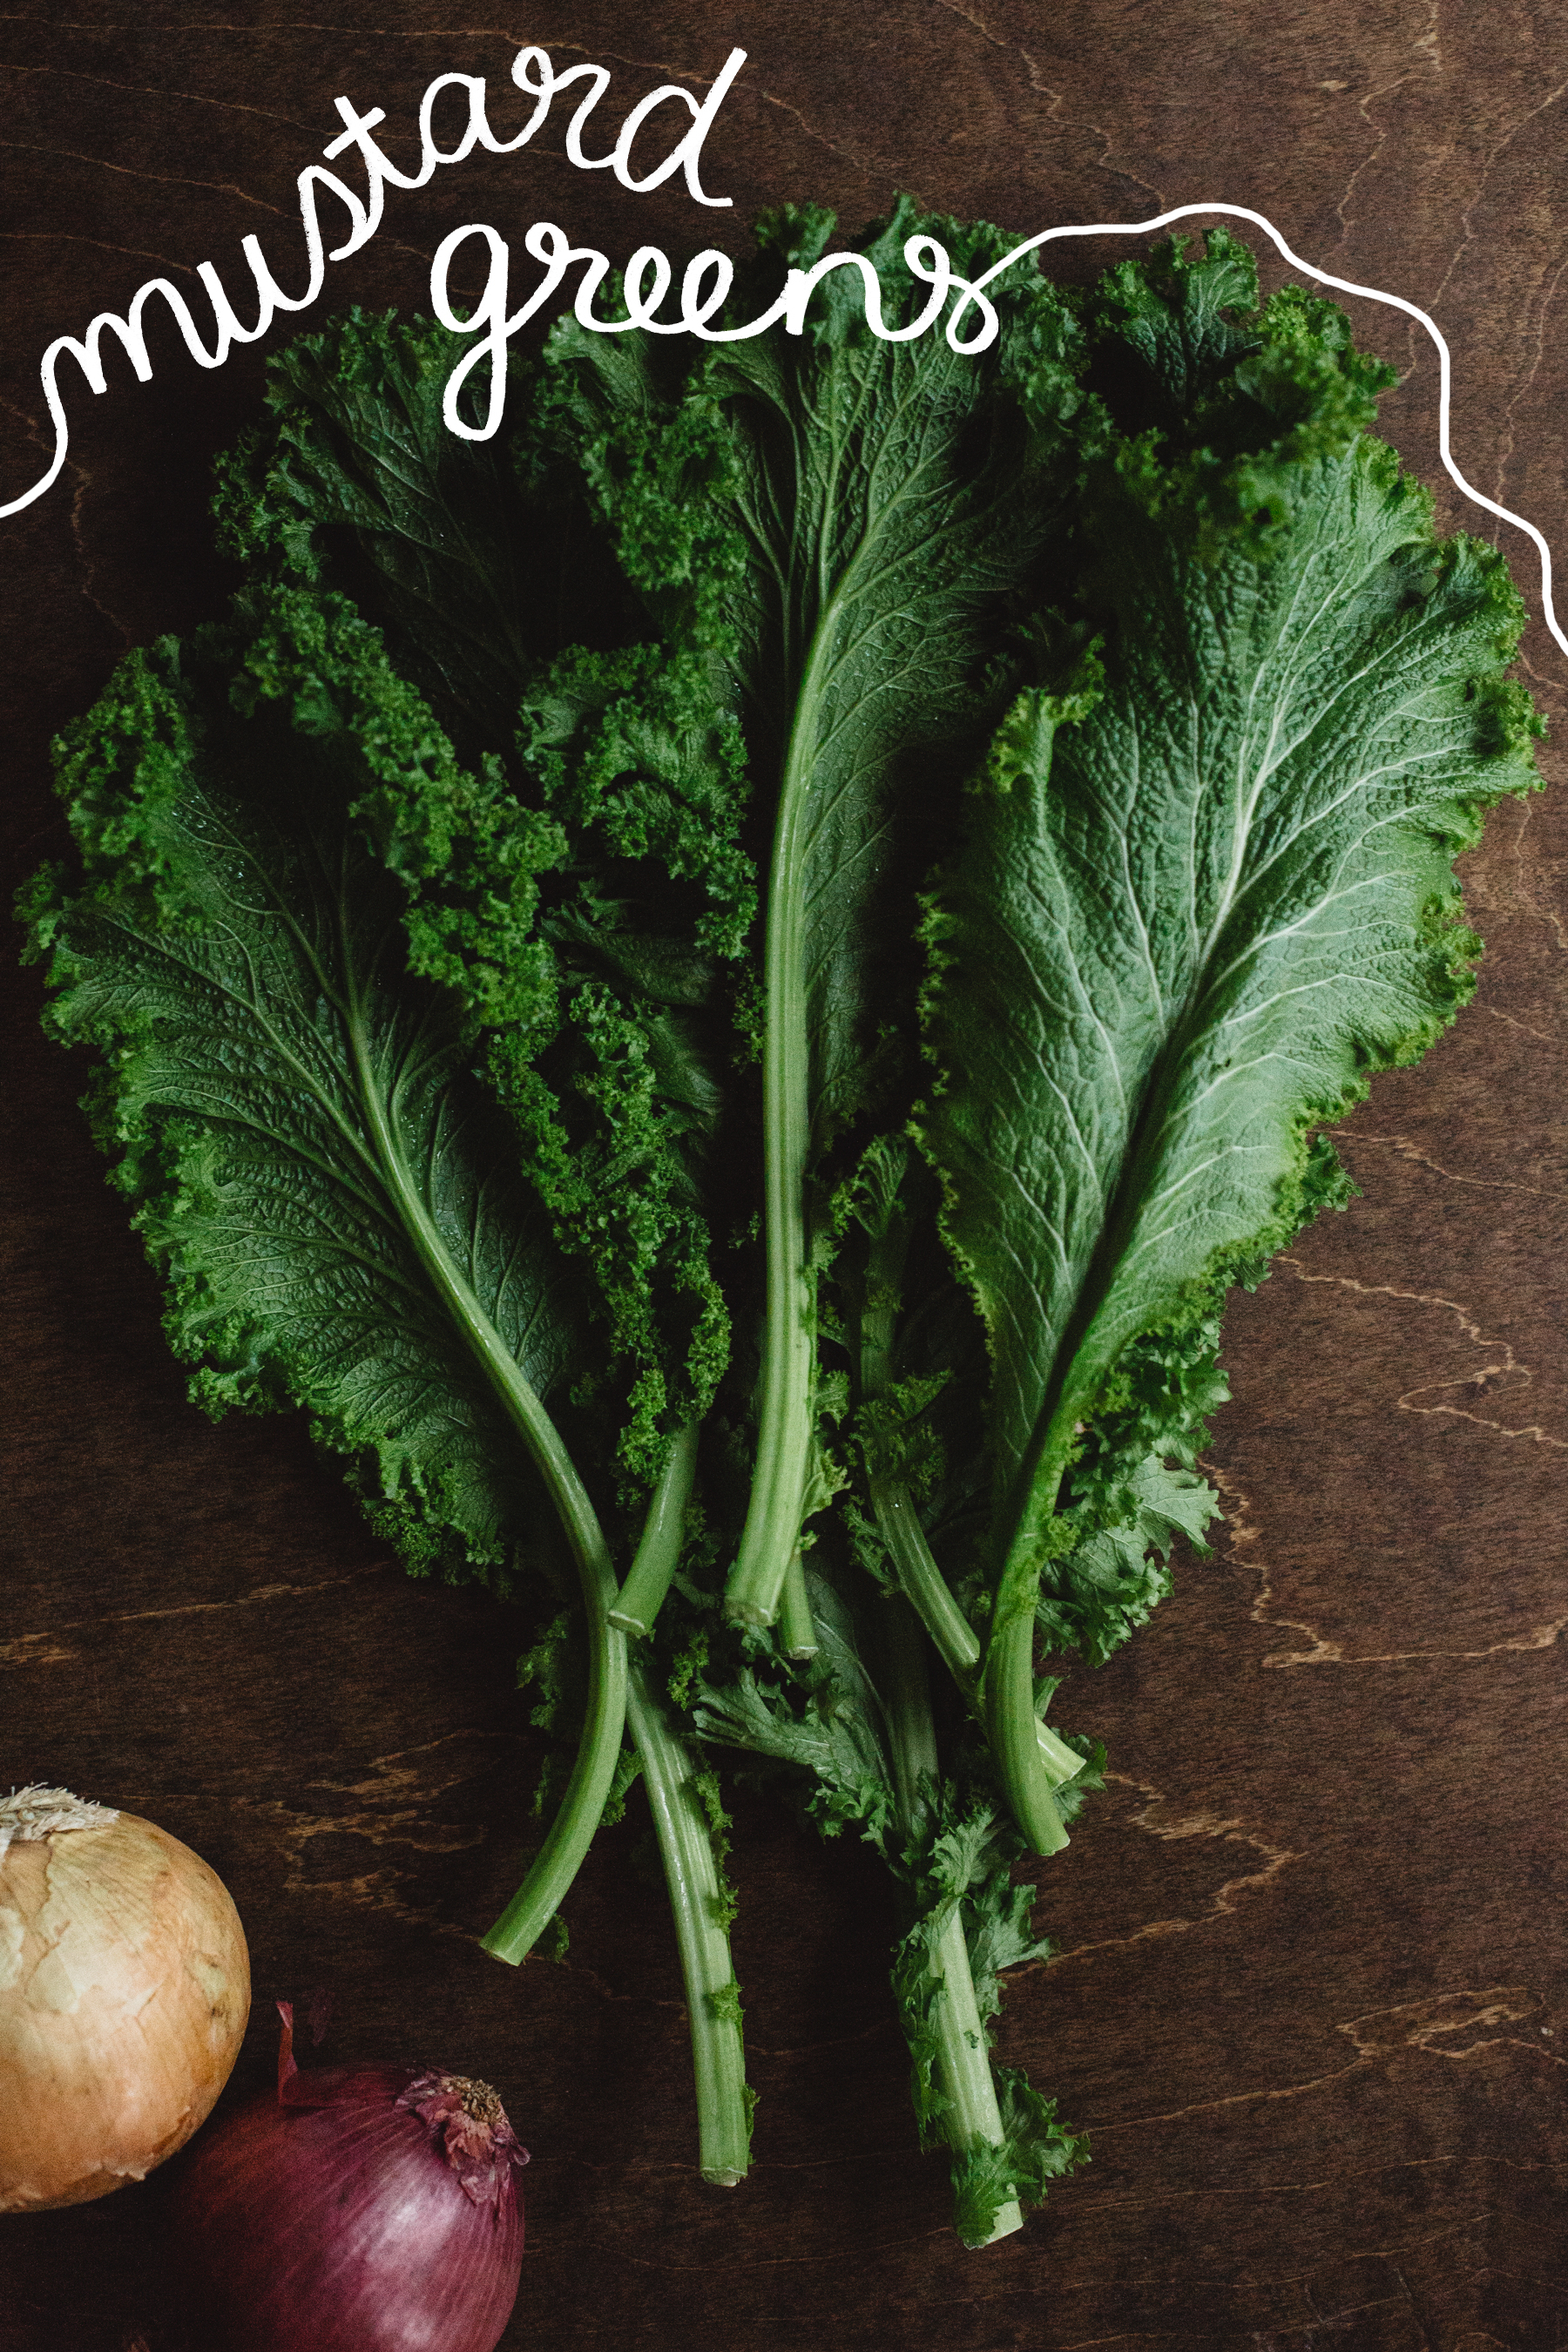 FOODSTUFF_GUIDE-TO-GREENS_MUSTARD-GREENS_KS.jpg